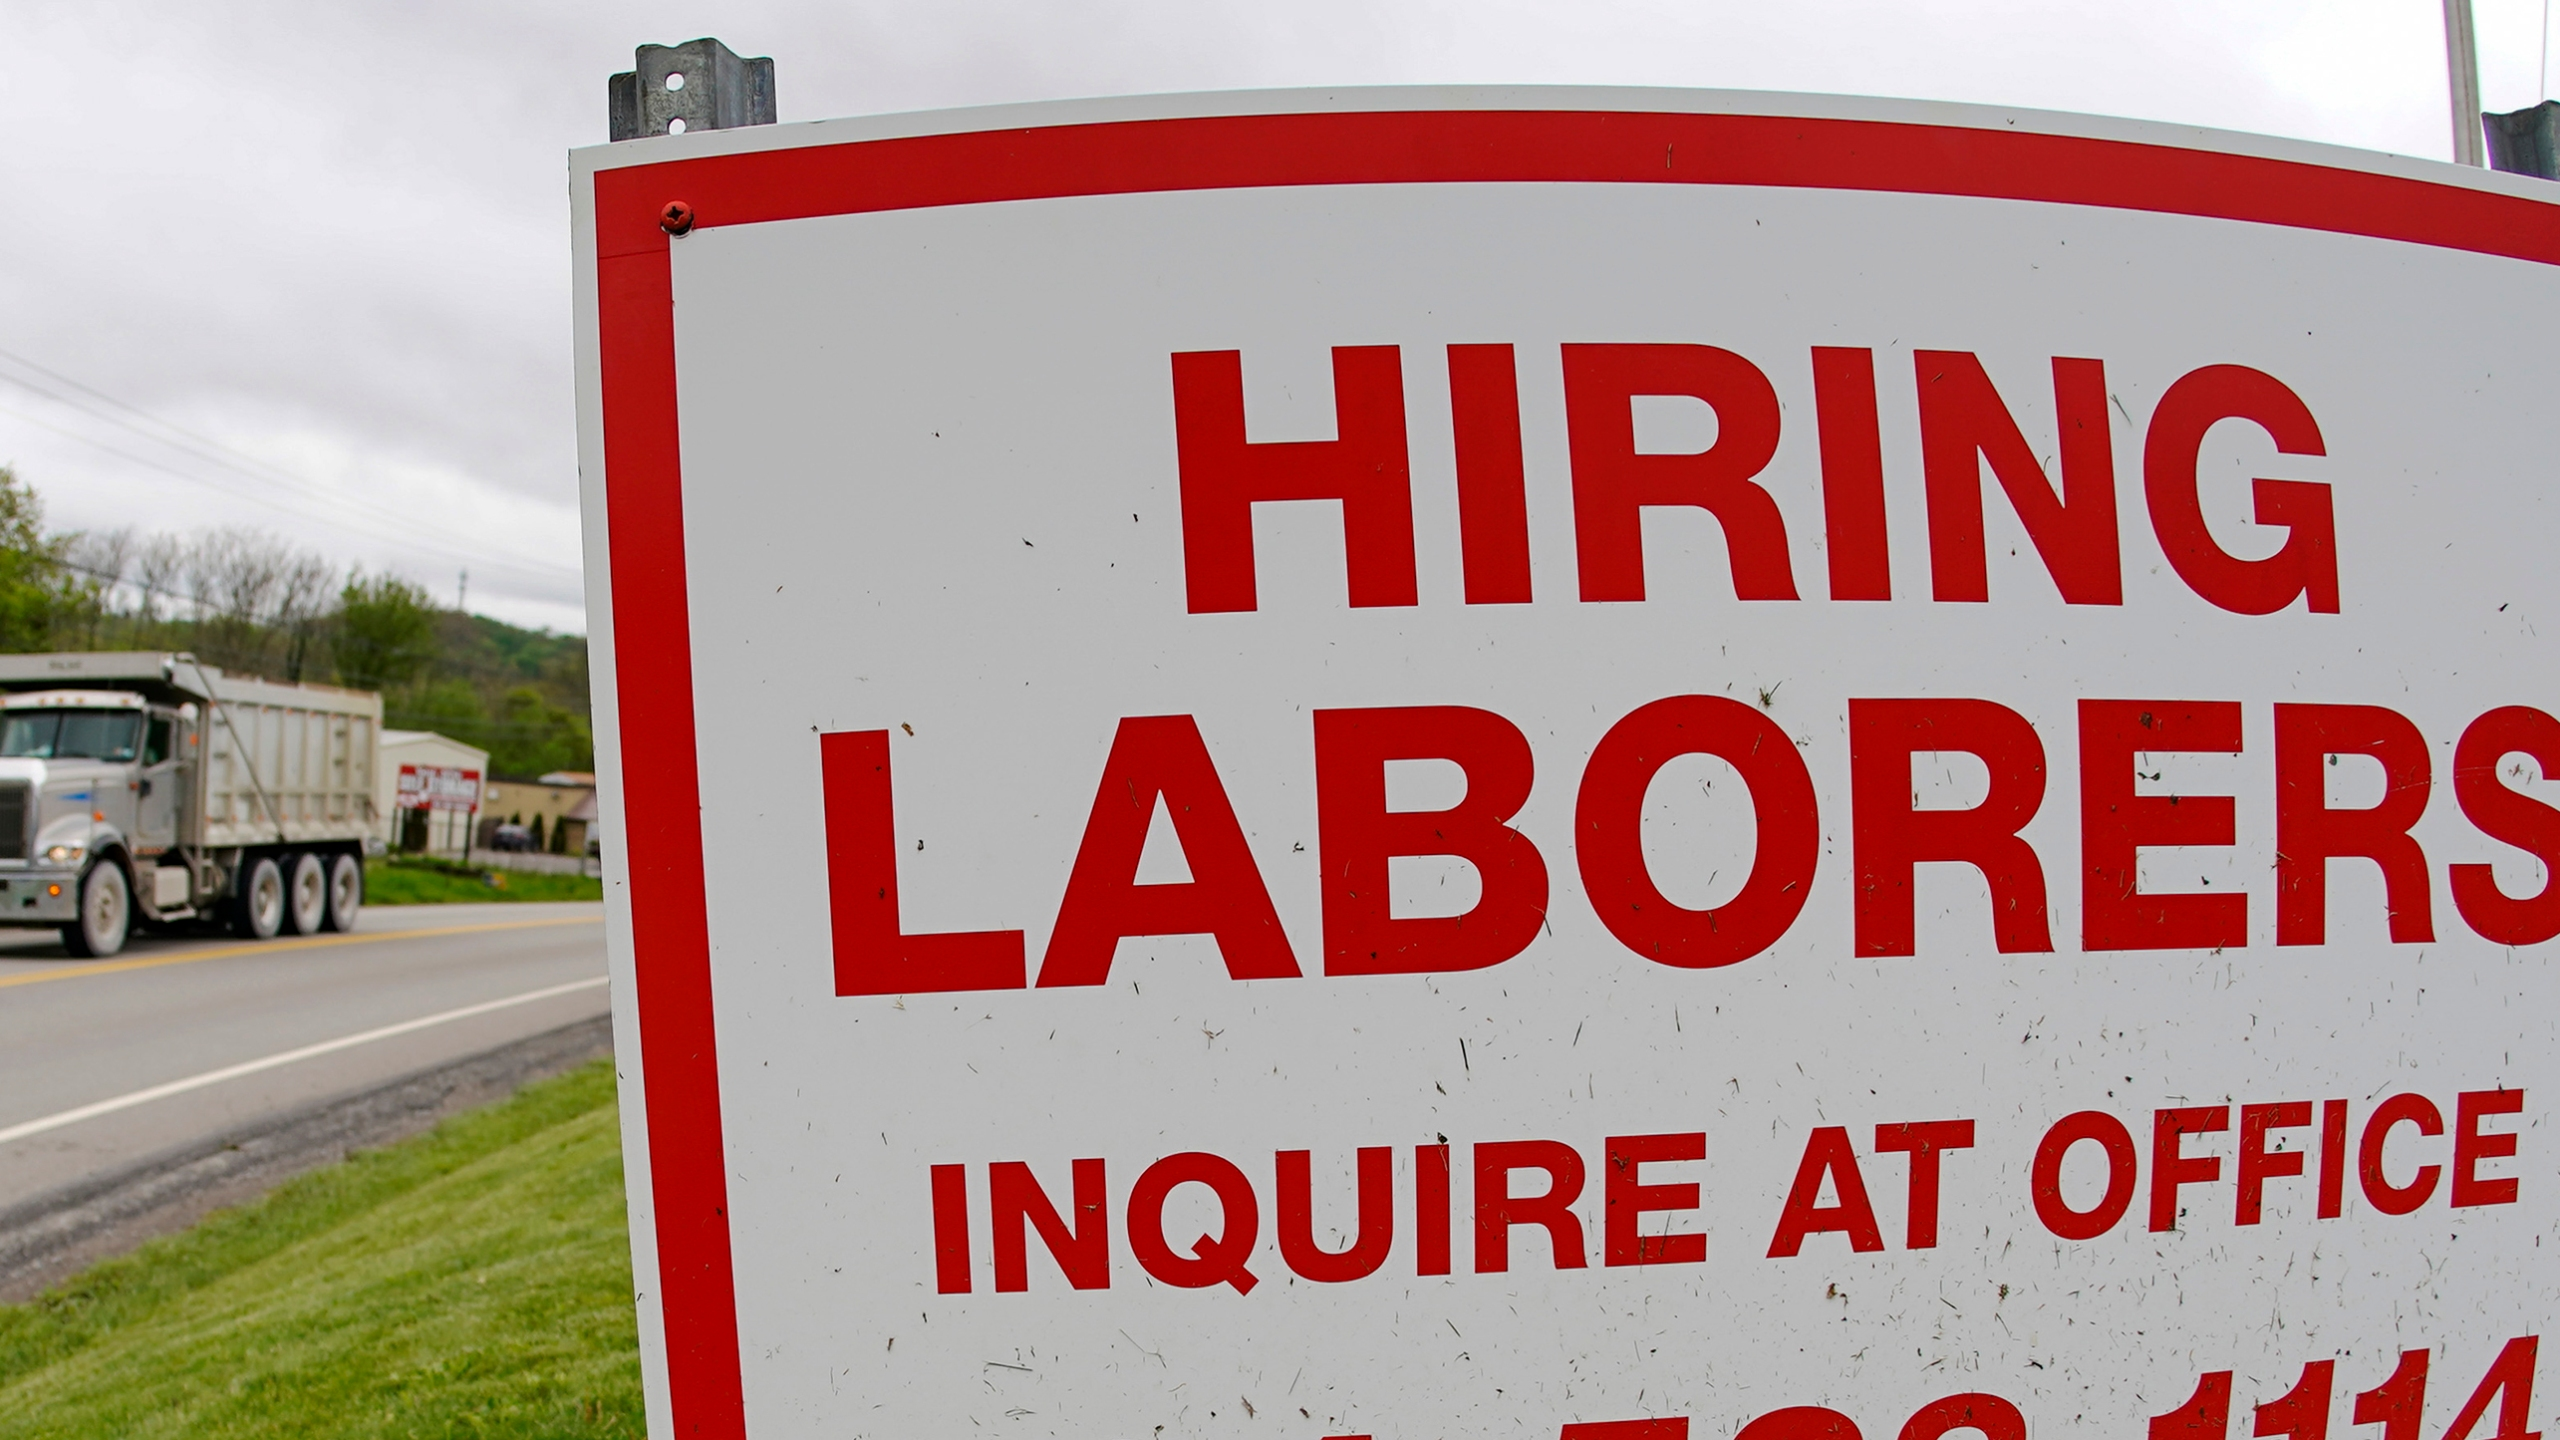 In this file photo from May 5, 2021, a truck passes a sign showing a need to hire laborers outside a concrete products company in Evans City, Pa. Pennsylvania will resume work search requirements in July for hundreds of thousands of people receiving unemployment compensation, a top Wolf administration official said Monday, May 24, 2021. (AP Photo/Keith Srakocic, File)